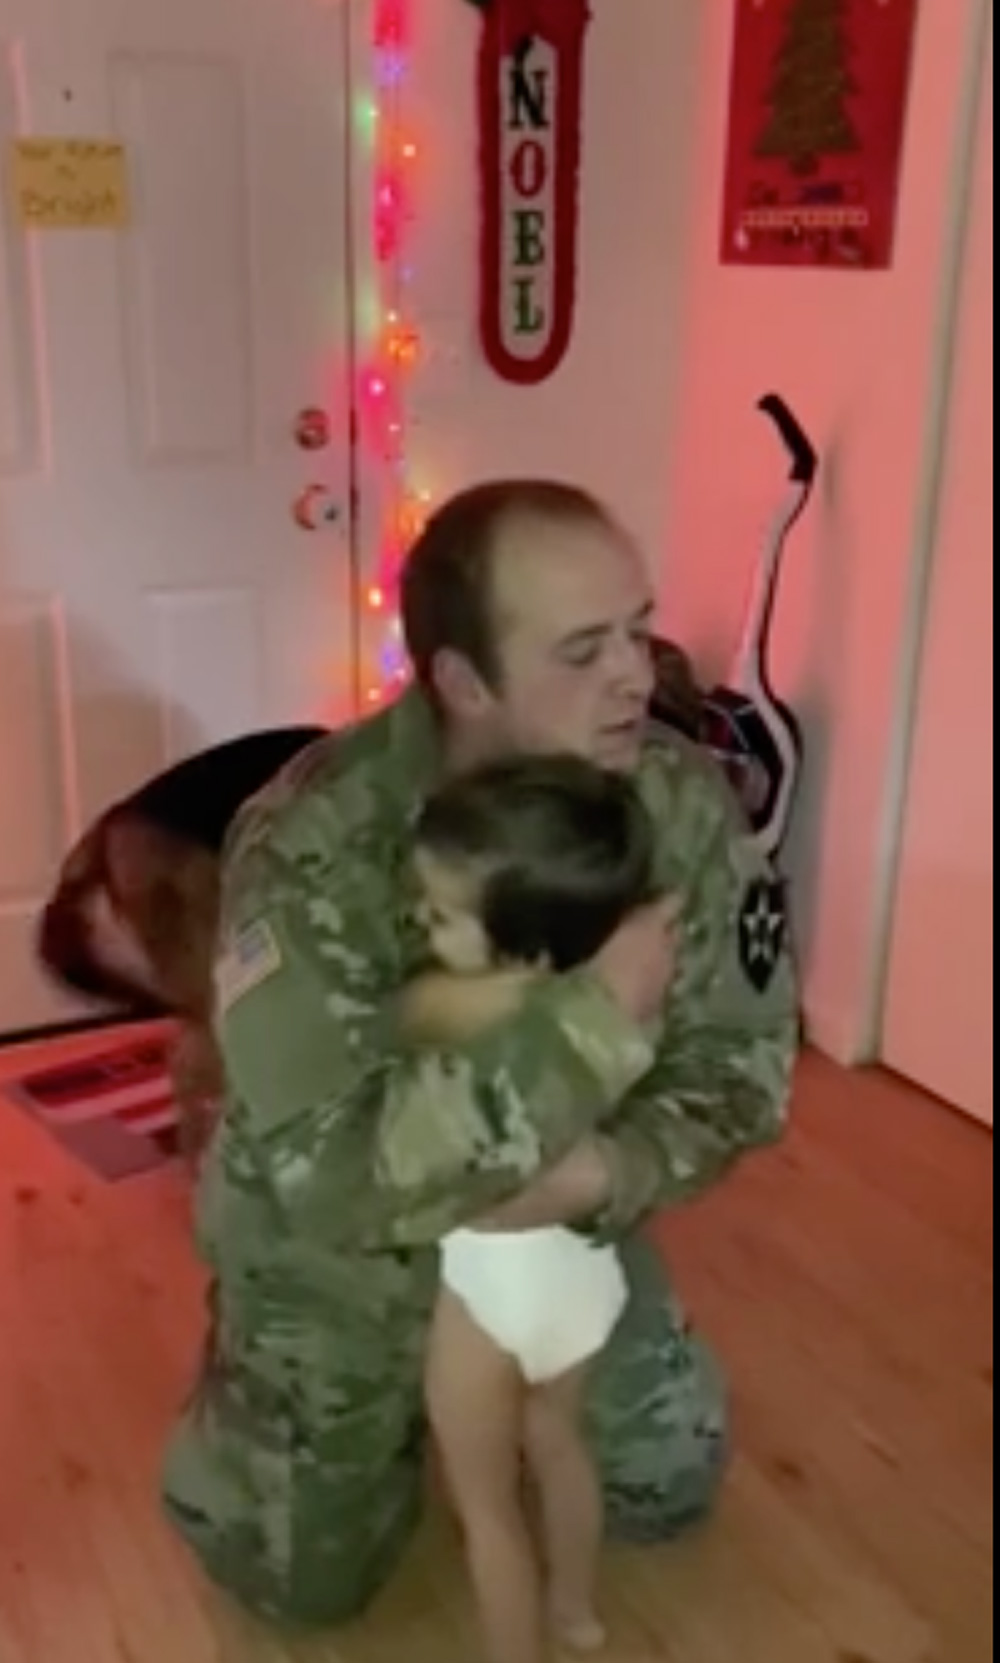 The boy gets a quick hug from dad.